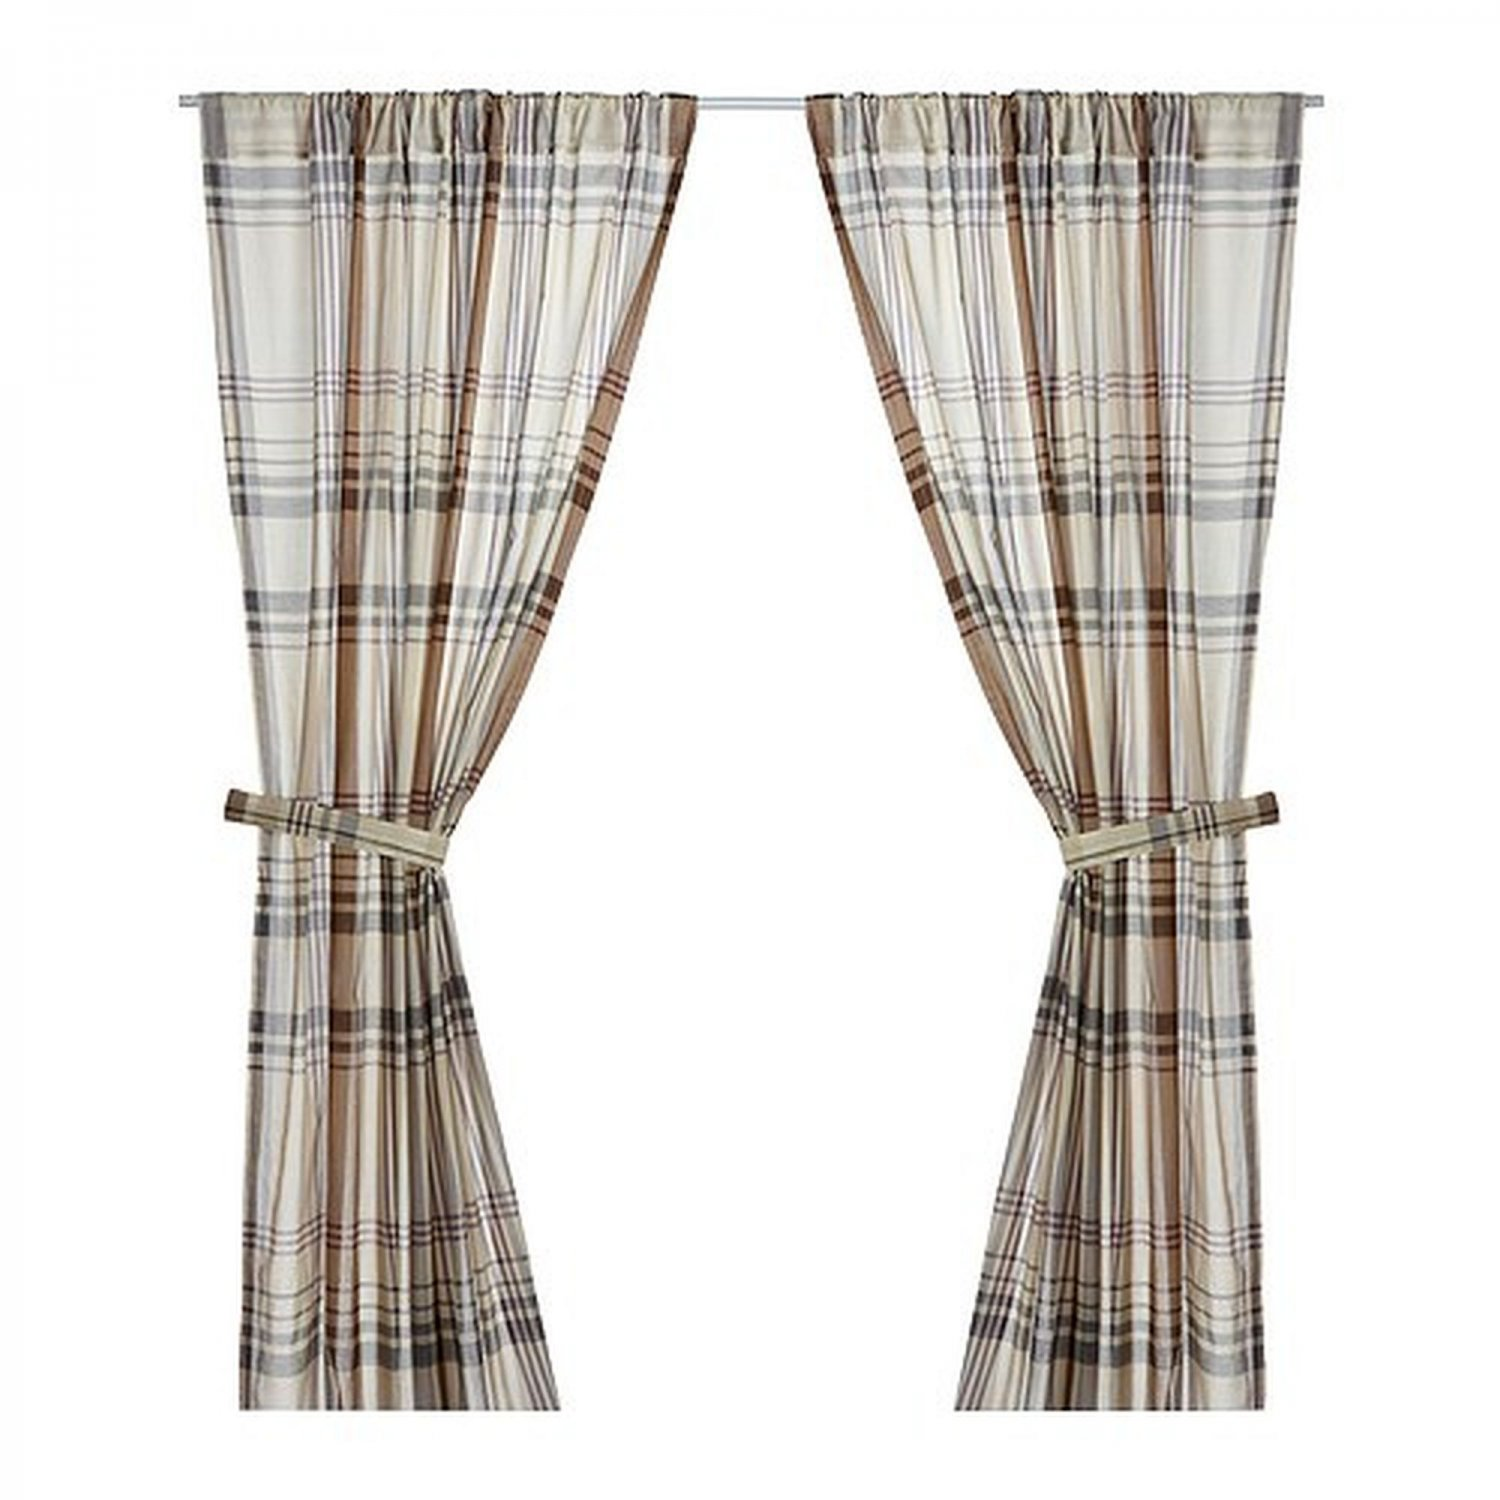 ikea benzy plaid curtains drapes 2 panels beige tan gray. Black Bedroom Furniture Sets. Home Design Ideas